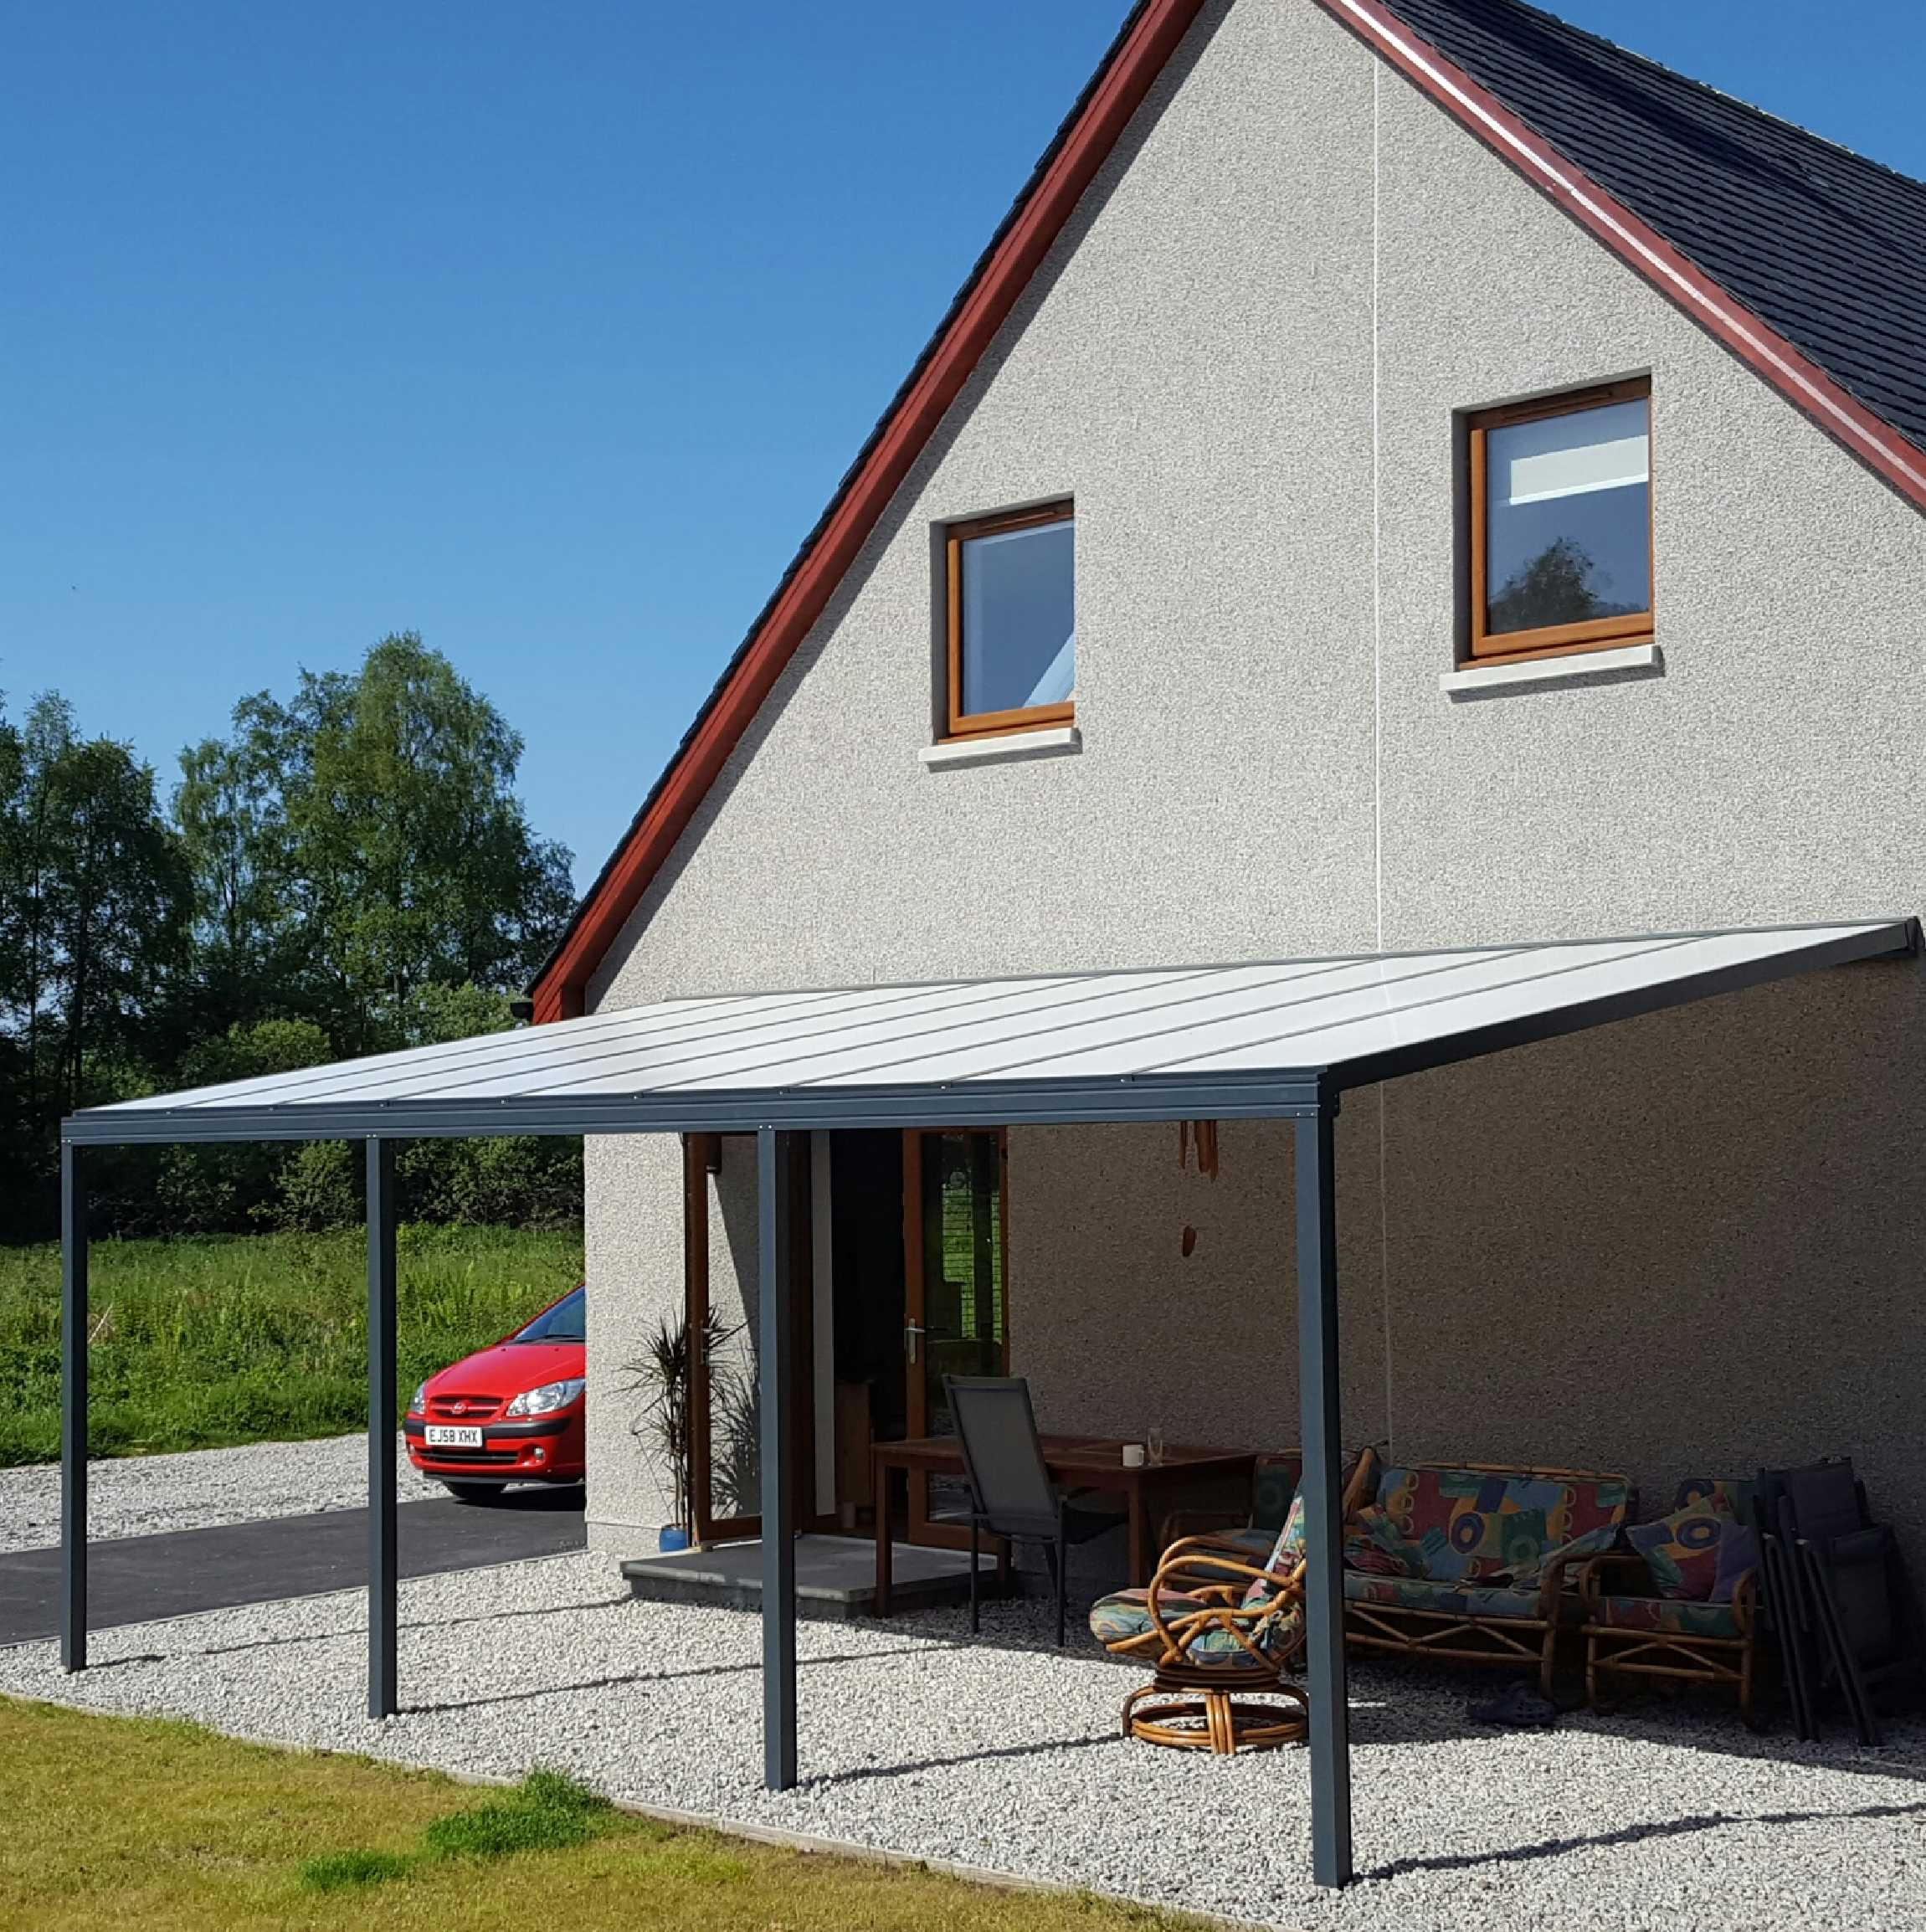 Great selection of Omega Smart Lean-To Canopy, Anthracite Grey, 16mm Polycarbonate Glazing - 5.6m (W) x 4.0m (P), (3) Supporting Posts